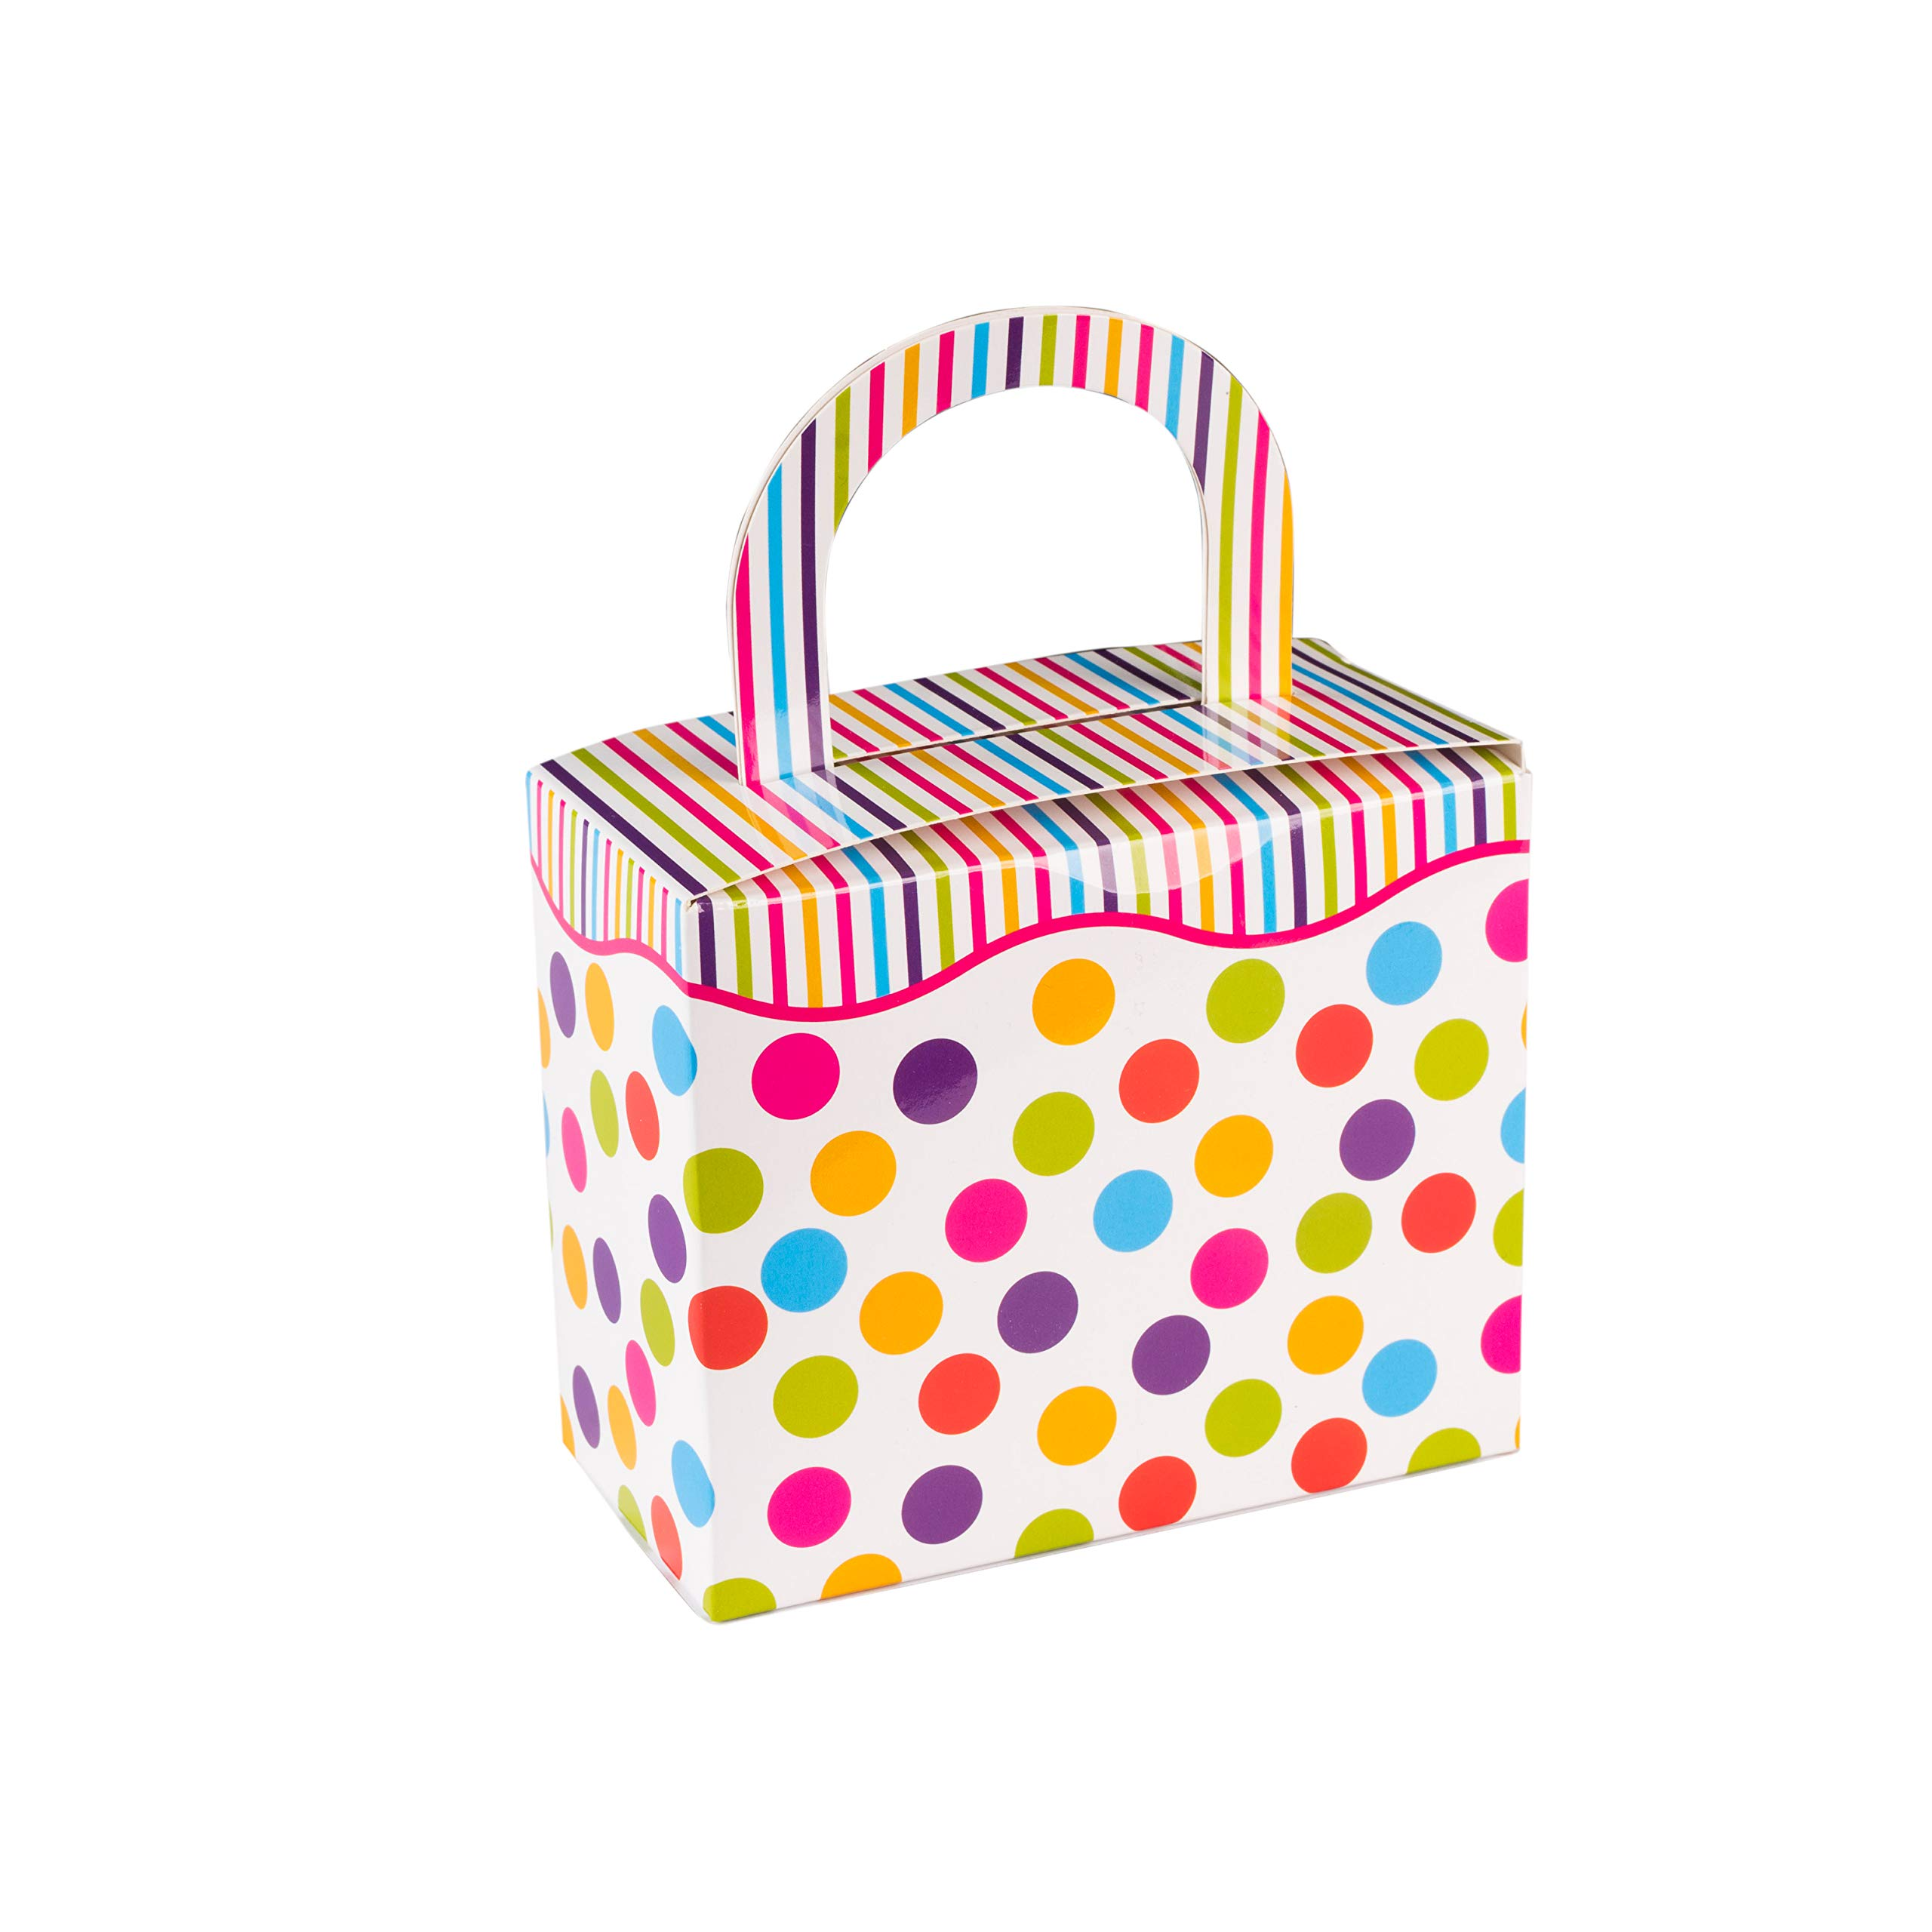 "Hammont Polka Dot Candy Boxes - Colorful Party Favor Treat Boxes with Sturdy Handle – Perfect for Wedding Favors, Parties and Celebrations | 4.5"" x 3.75"" x 2.25"" (18 Pack)"